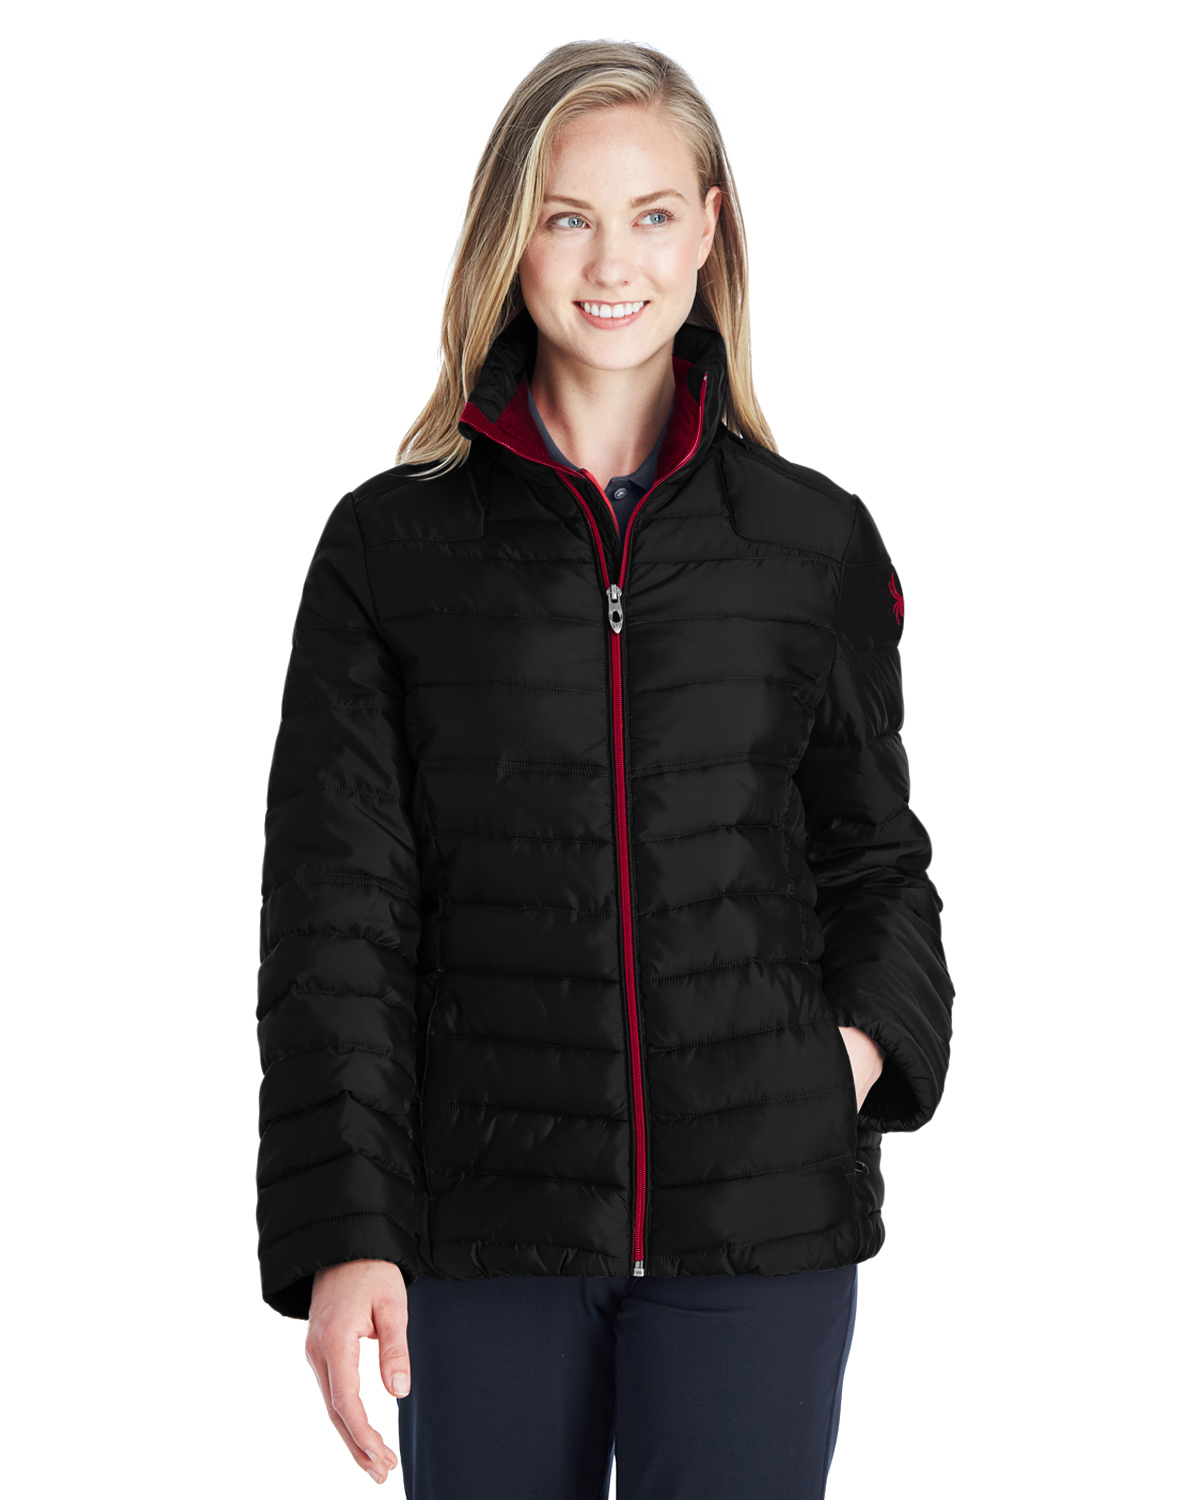 Spyder 187336 - Ladies' Supreme Insulated Puffer Jacket